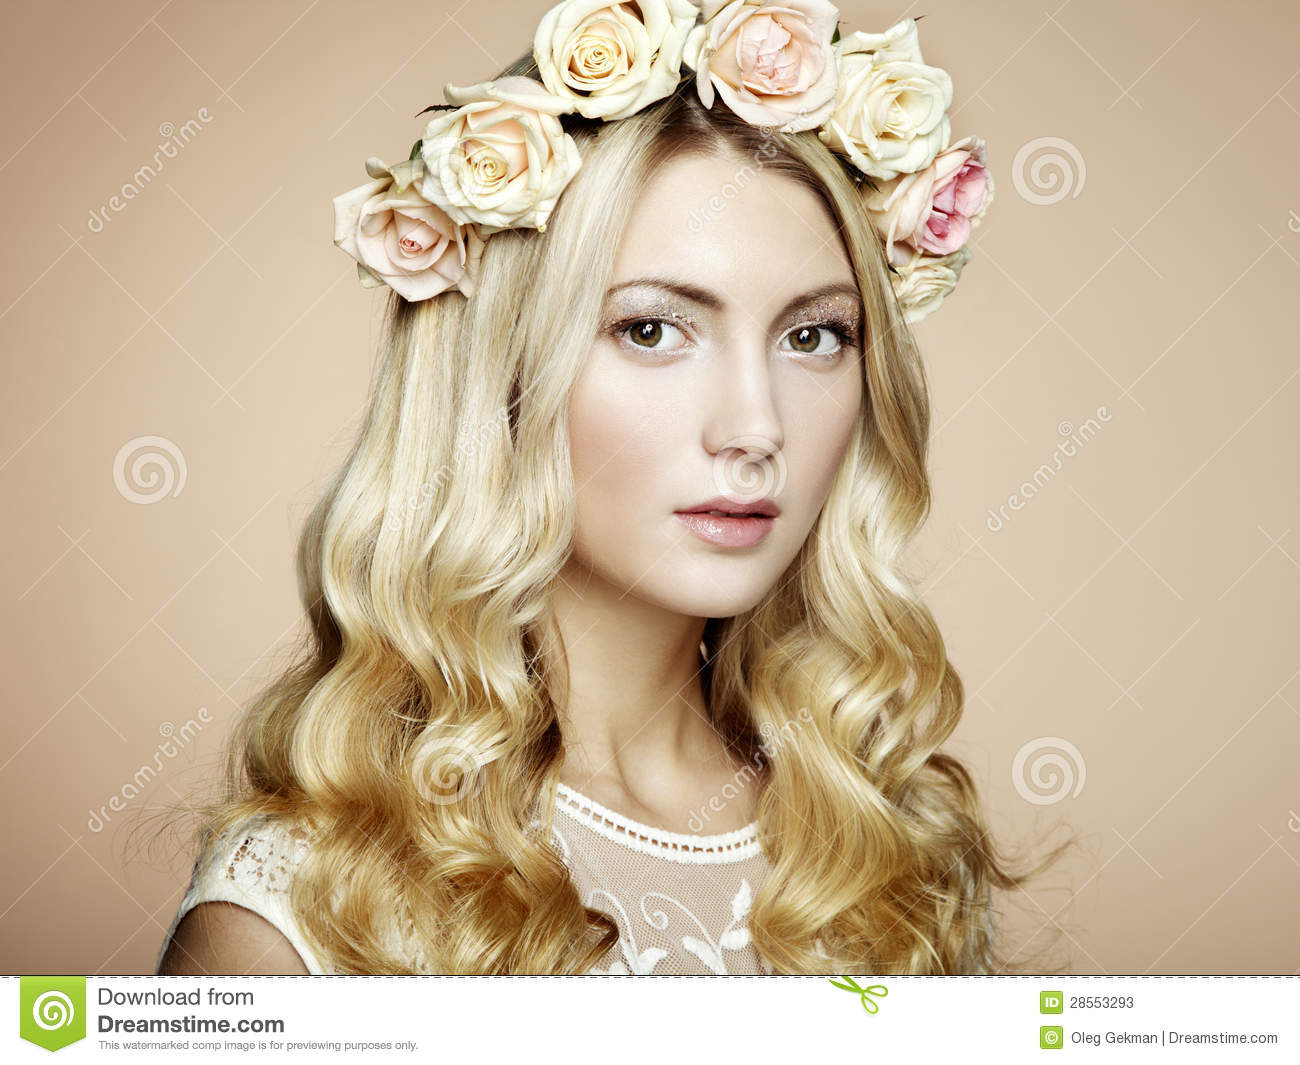 Portrait of a beautiful blonde woman with flowers in her hair portrait of a beautiful blonde woman with flowers in her hair stock photos dhlflorist Gallery